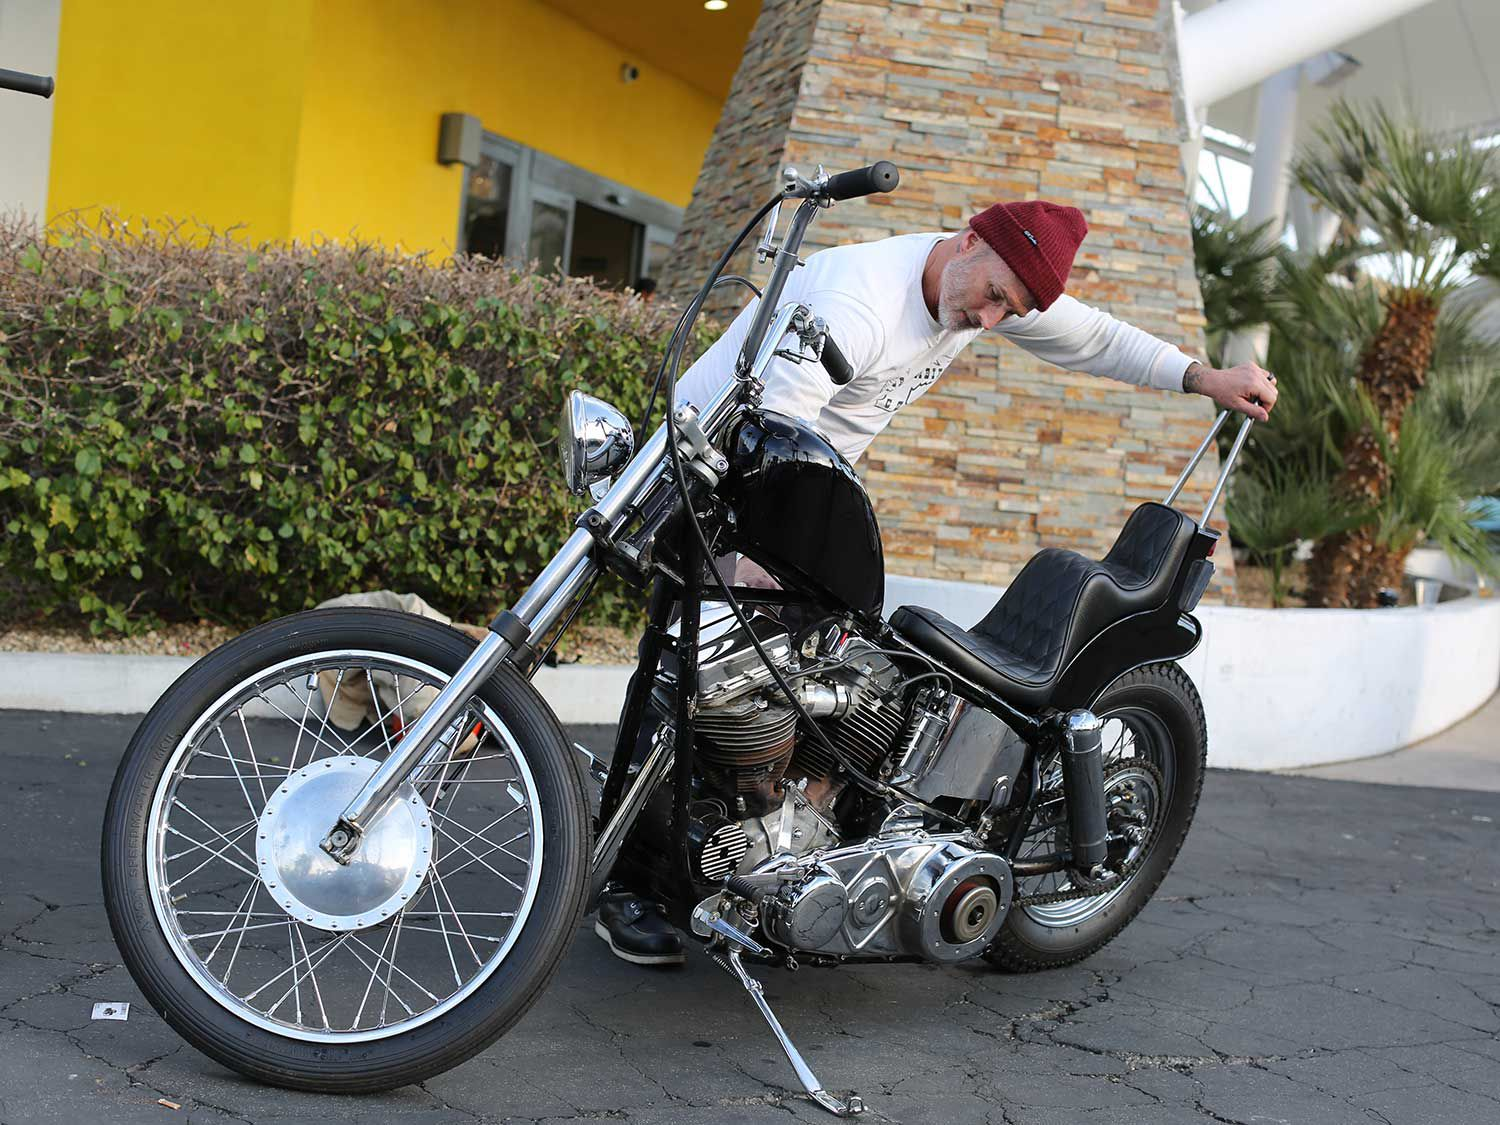 Crazy Frank-style Panhead chopper getting ready to leave the show for the night.